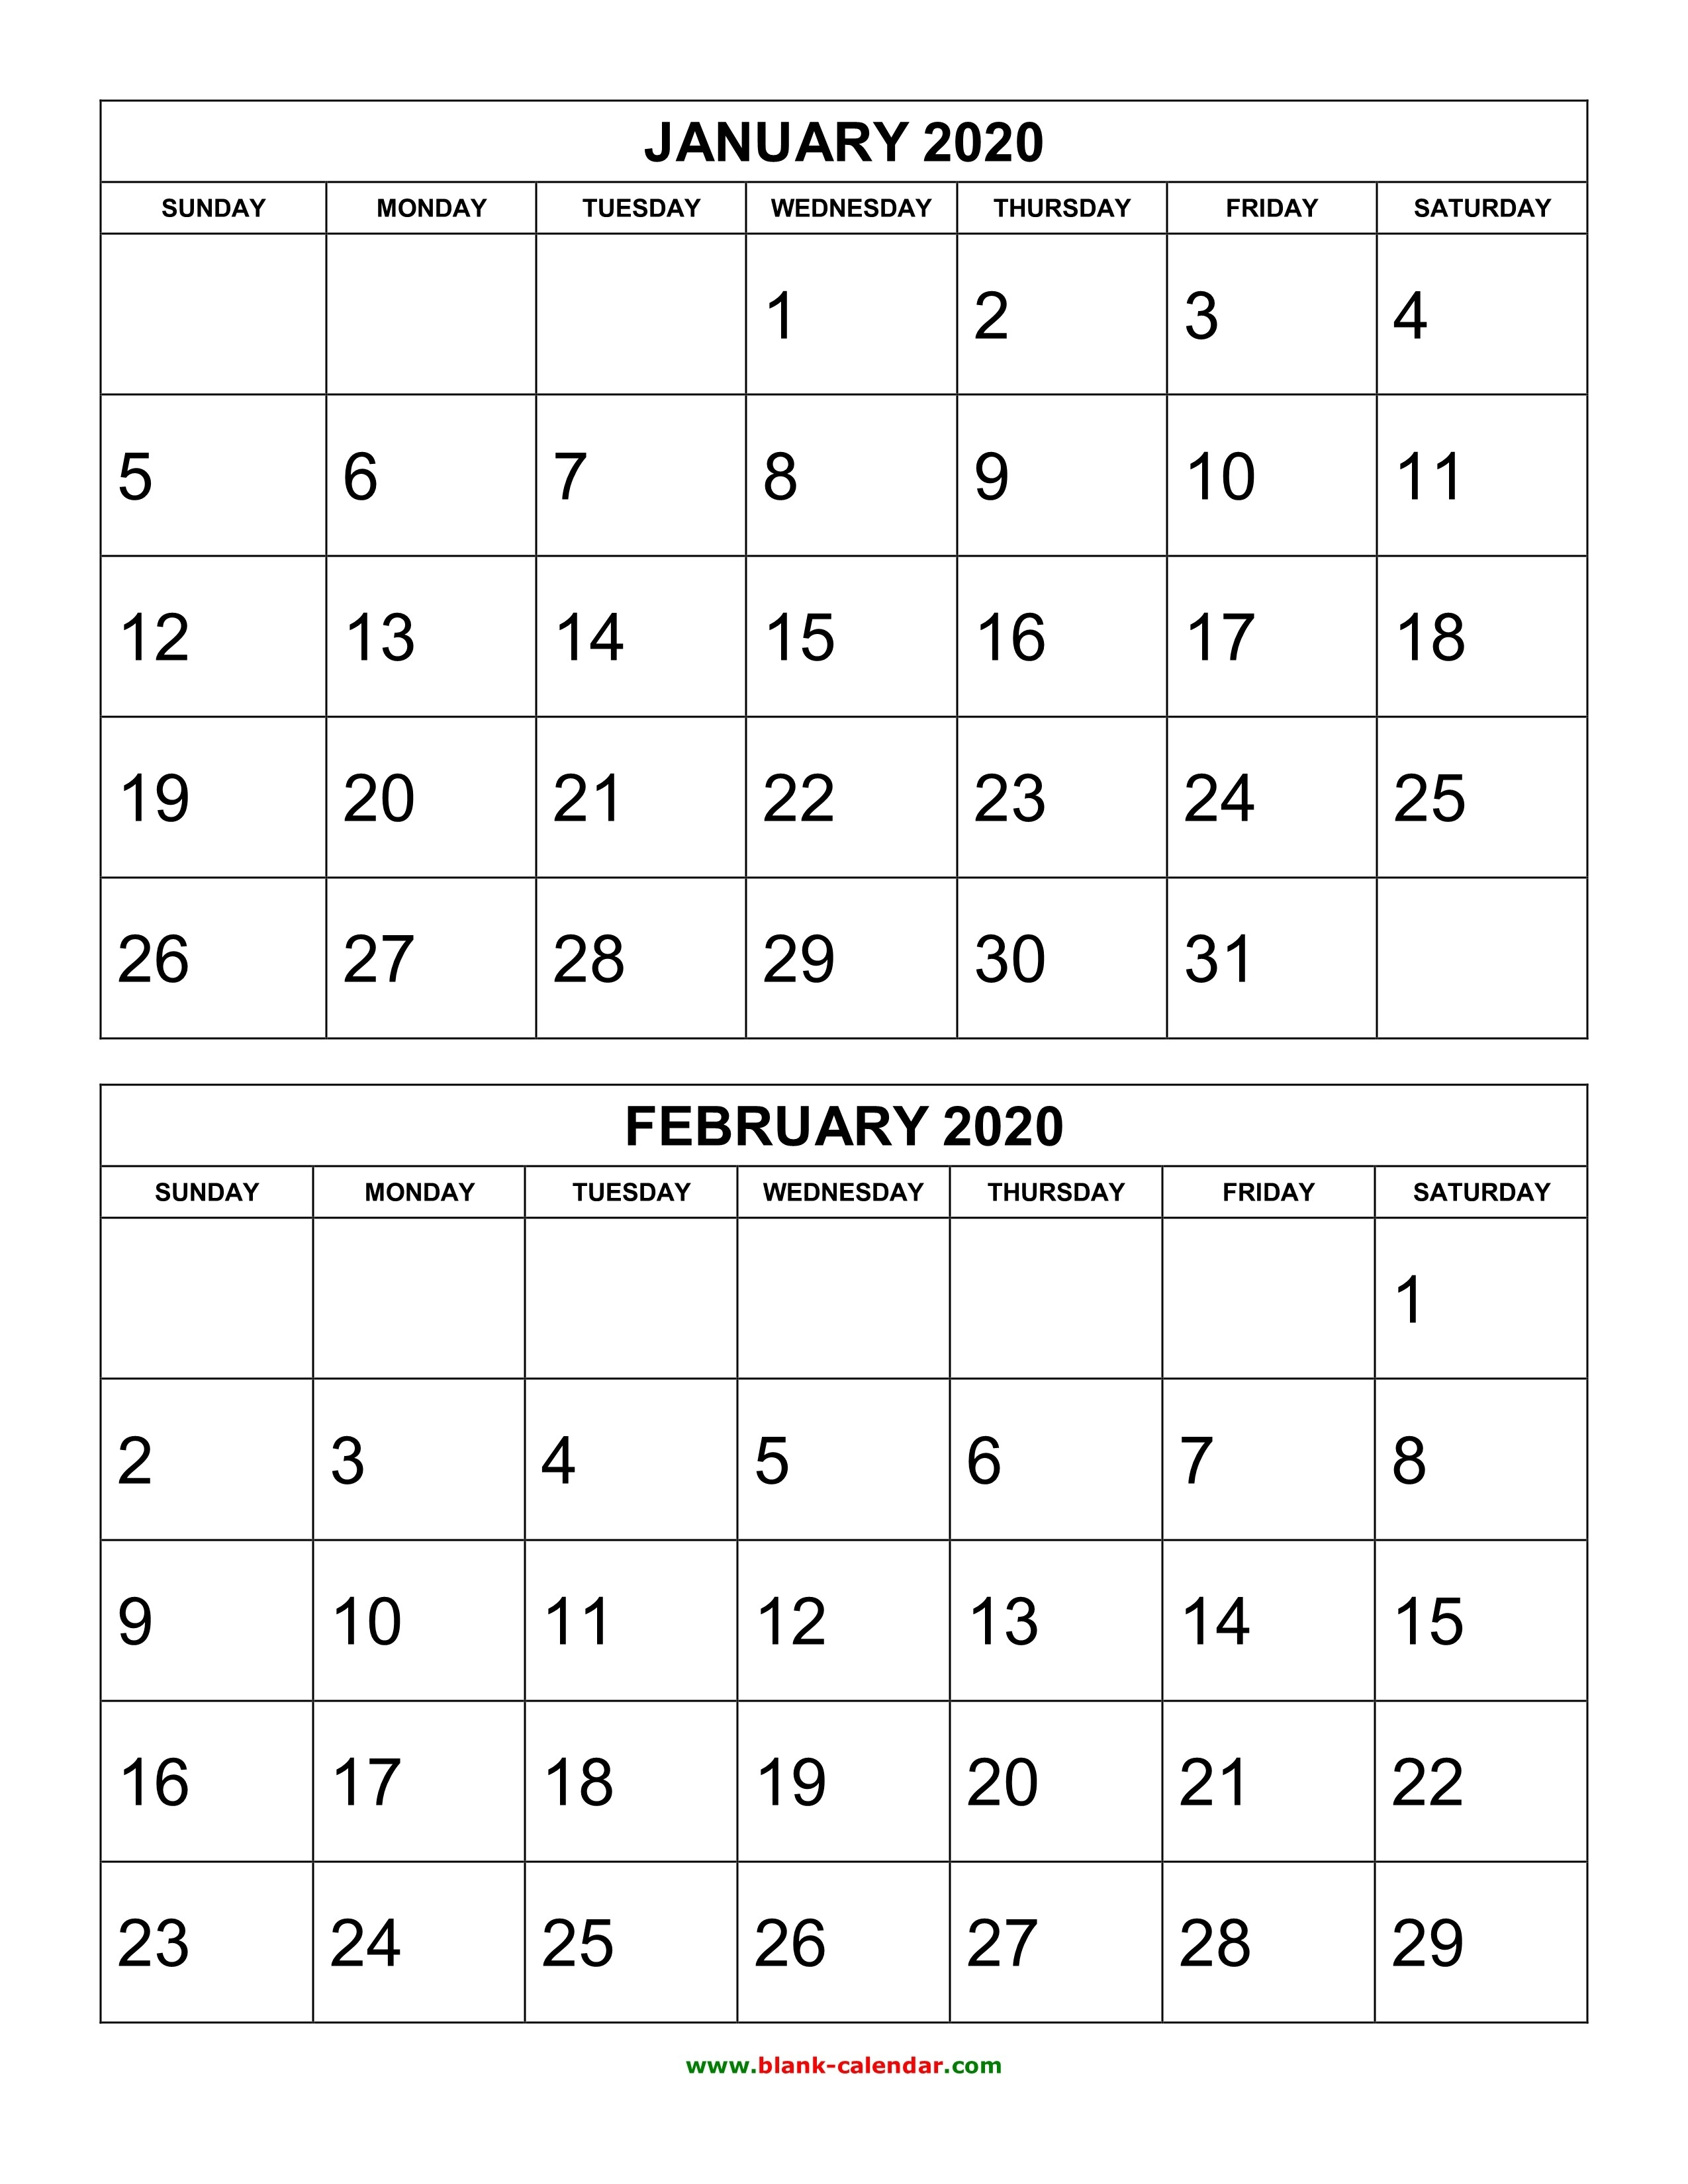 Free Download Printable Calendar 2020, 2 Months Per Page, 6-Blank Printable Calandes With 2 Months On A Page Year 2020